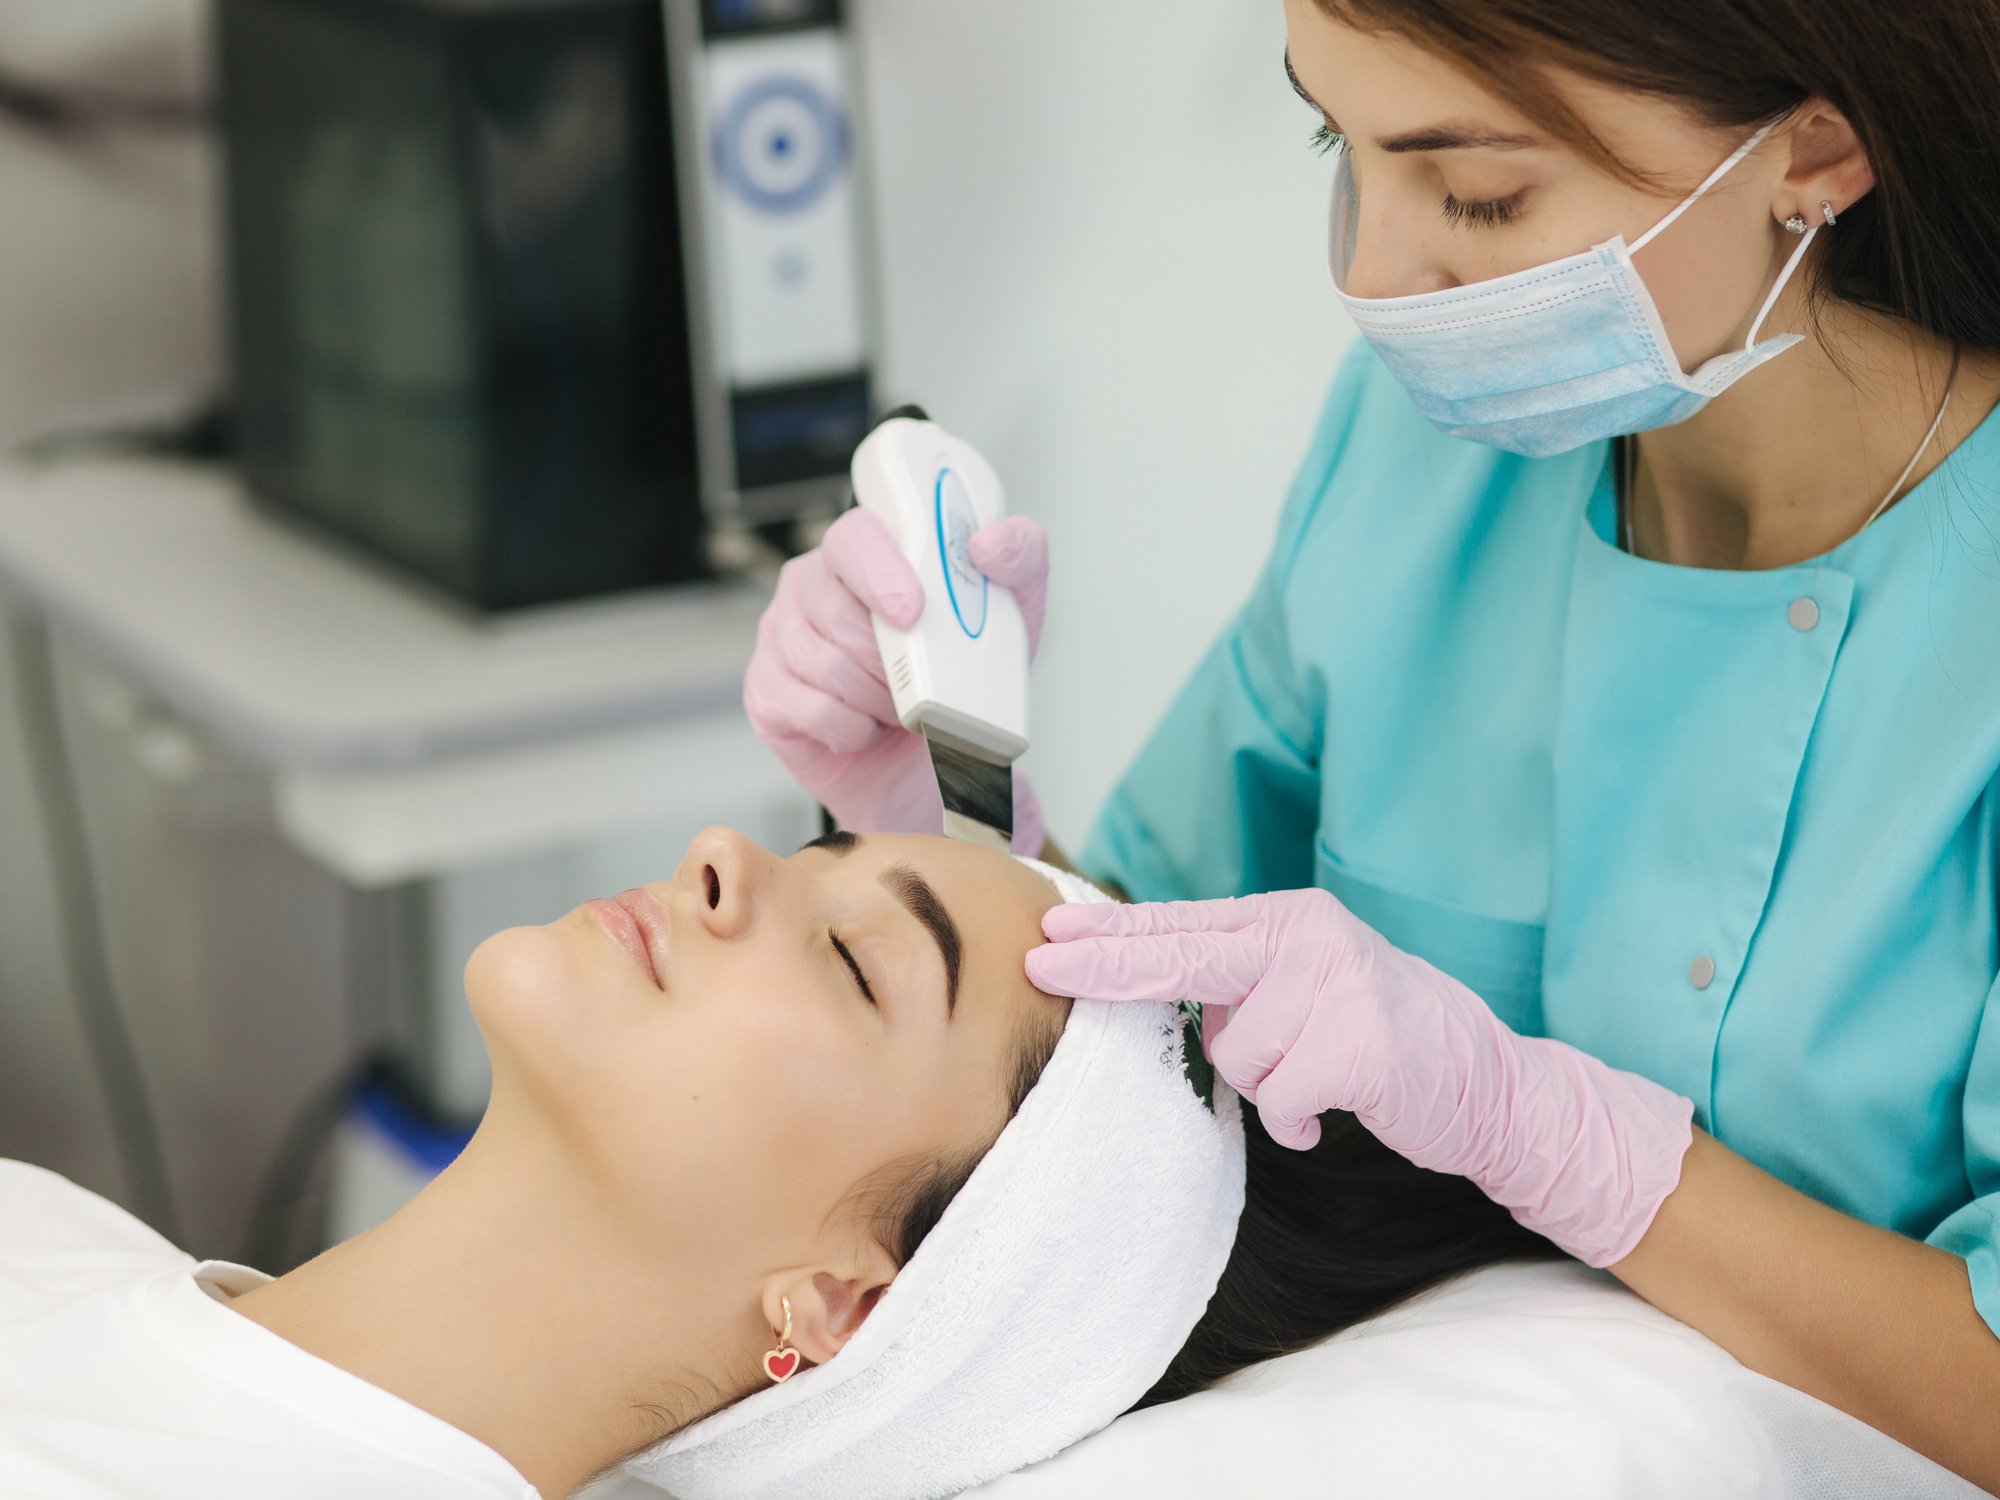 Can Laser Treatment Help with Brown Spot and Sunspot Removal?